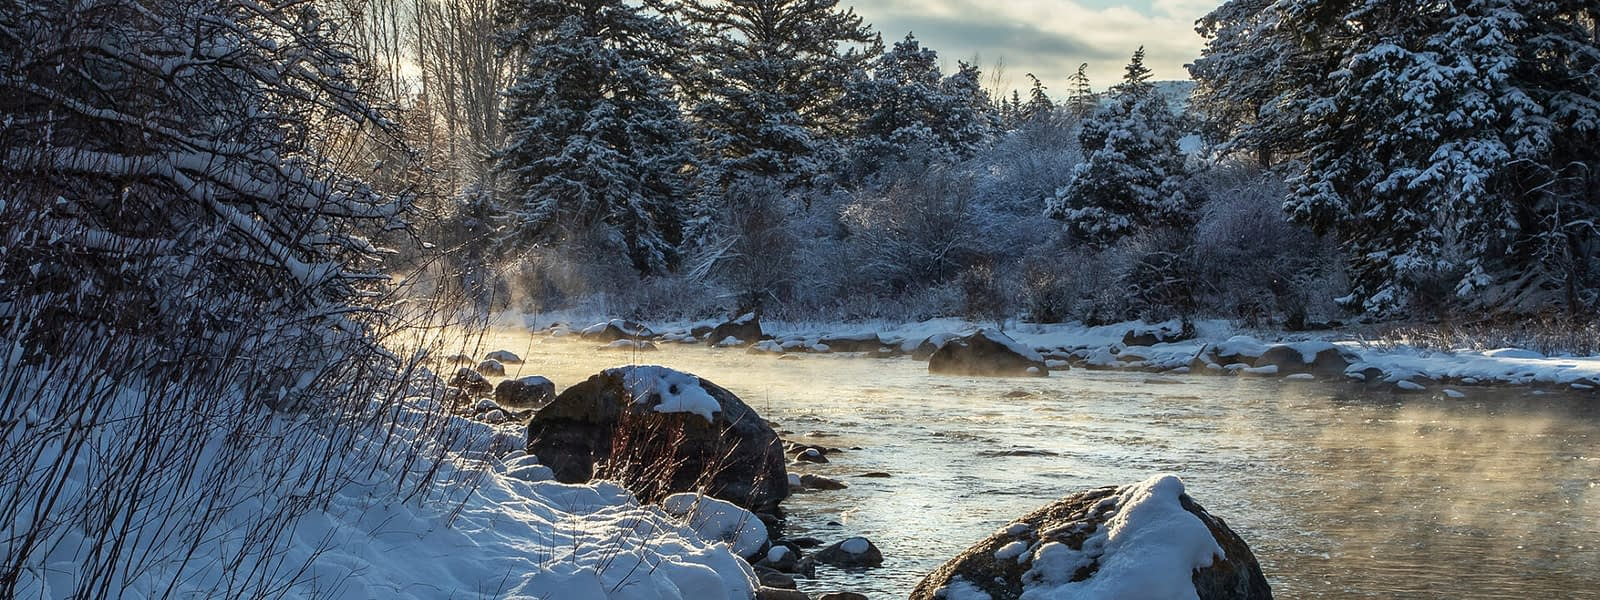 Steaming Eagle River Image by Eagle Valley Wild. Snowy Rocks and trees. Eagle County, Colorado